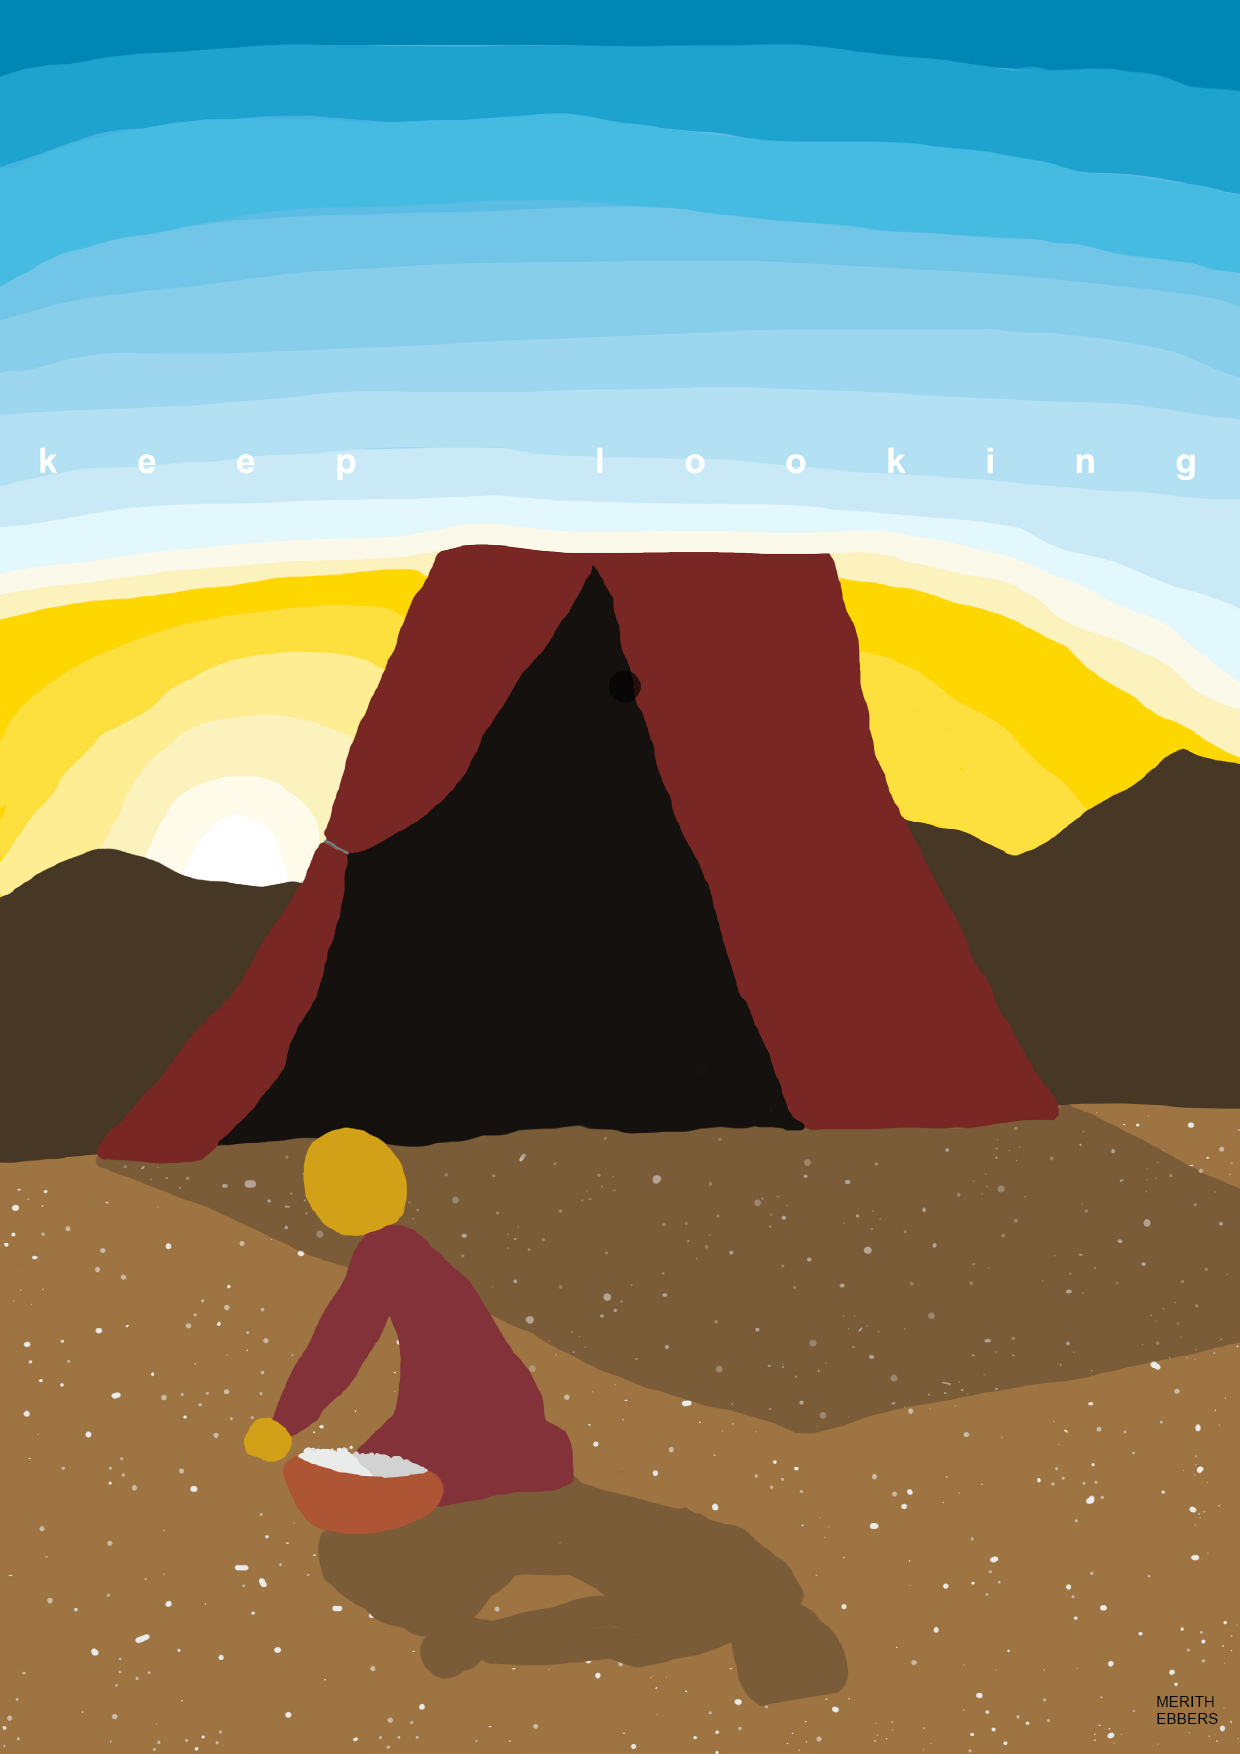 Does God really supply all my need? an illustration on manna